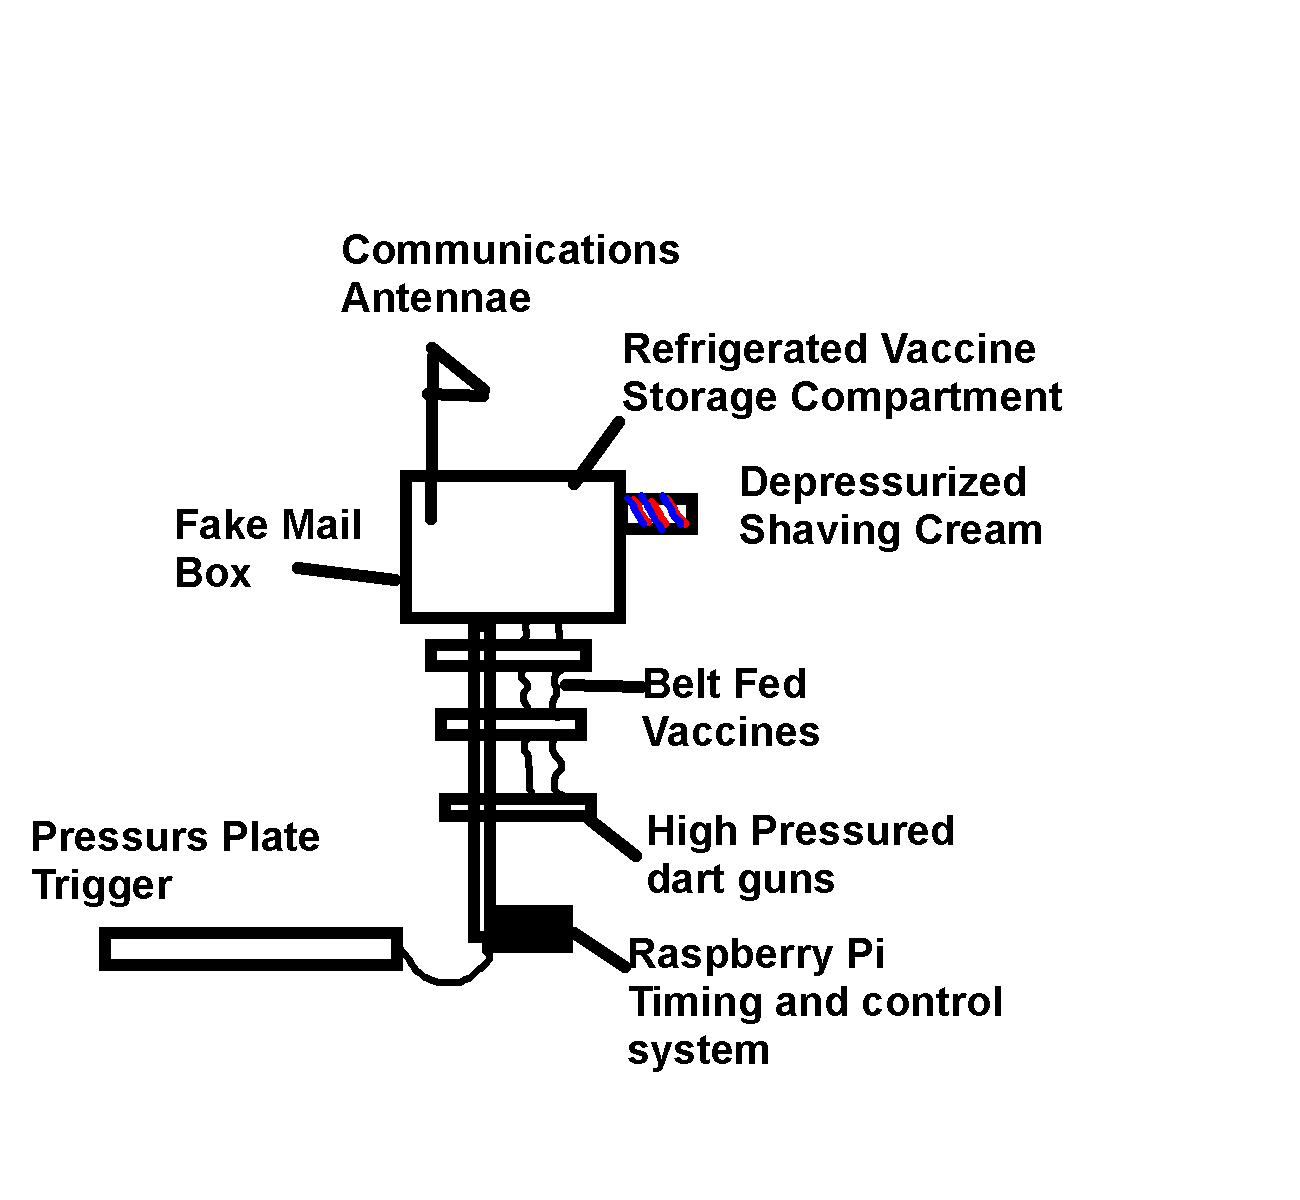 Figure 1: Vaccination Booby Trap with pressure plate, belt fed vaccination air gun, and depressurized shaving cream cooling system